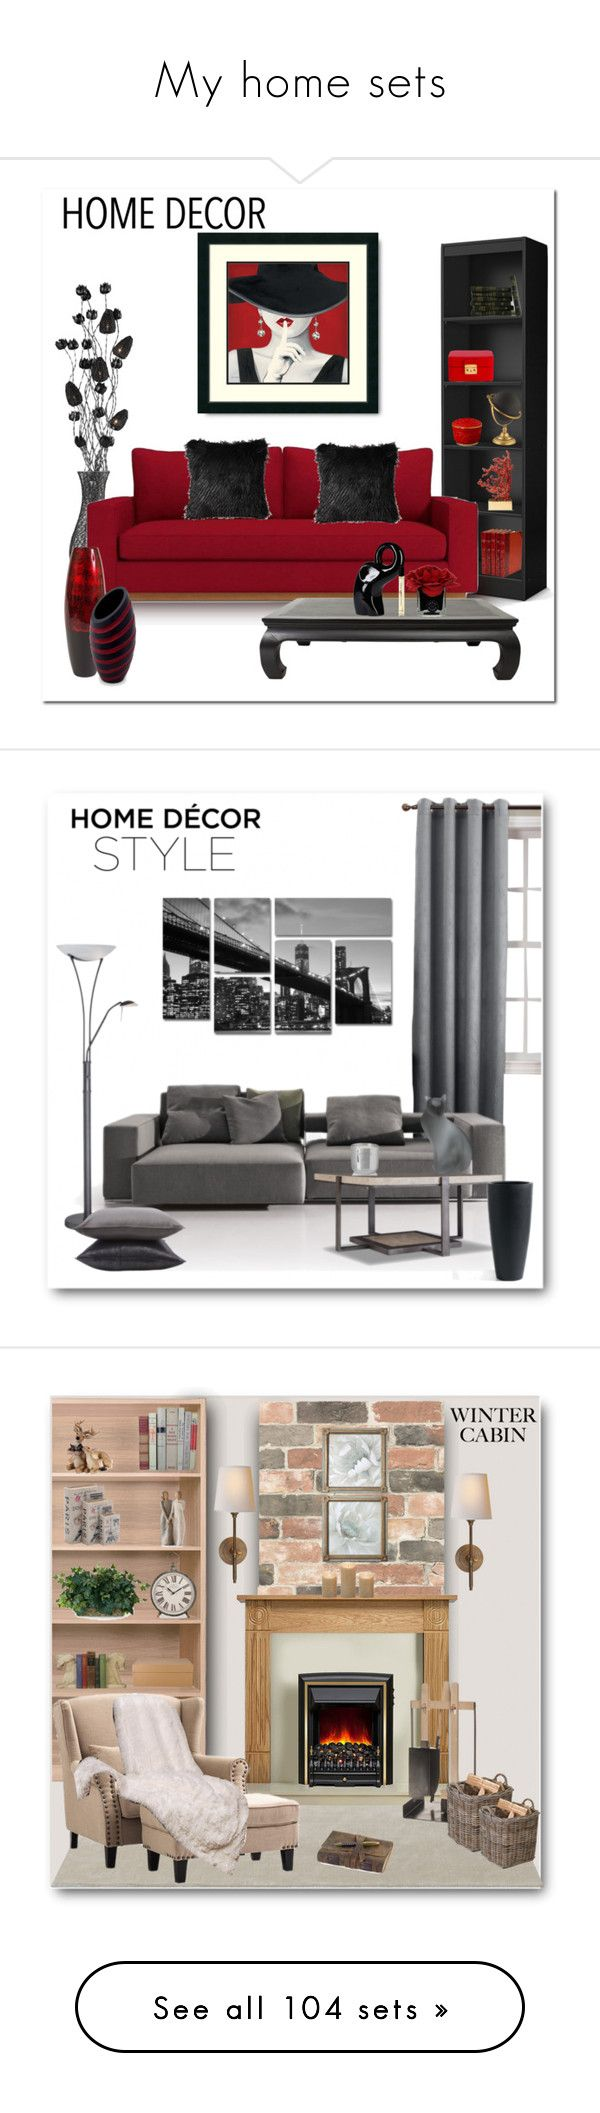 My home sets by bliznec on Polyvore featuring polyvore, interior, interiors, interior design, home, home decor, interior decorating, Dimond, Hervé Gambs, GREEN, NOVICA, L'Objet, Miu Miu, homedesign, Sun Zero, B&B Italia, Hooker Furniture, Trademark Fine Art, Lite Source, Jayson Home, Tom Dixon, Daum, Brewster Home Fashions, Iris Hantverk, Home Decorators Collection, Visual Comfort, Arte & Cuoio, Nearly Natural, Garden Trading, WALL, Threshold, Pottery Barn, Zodax, Catherine Malandrino…